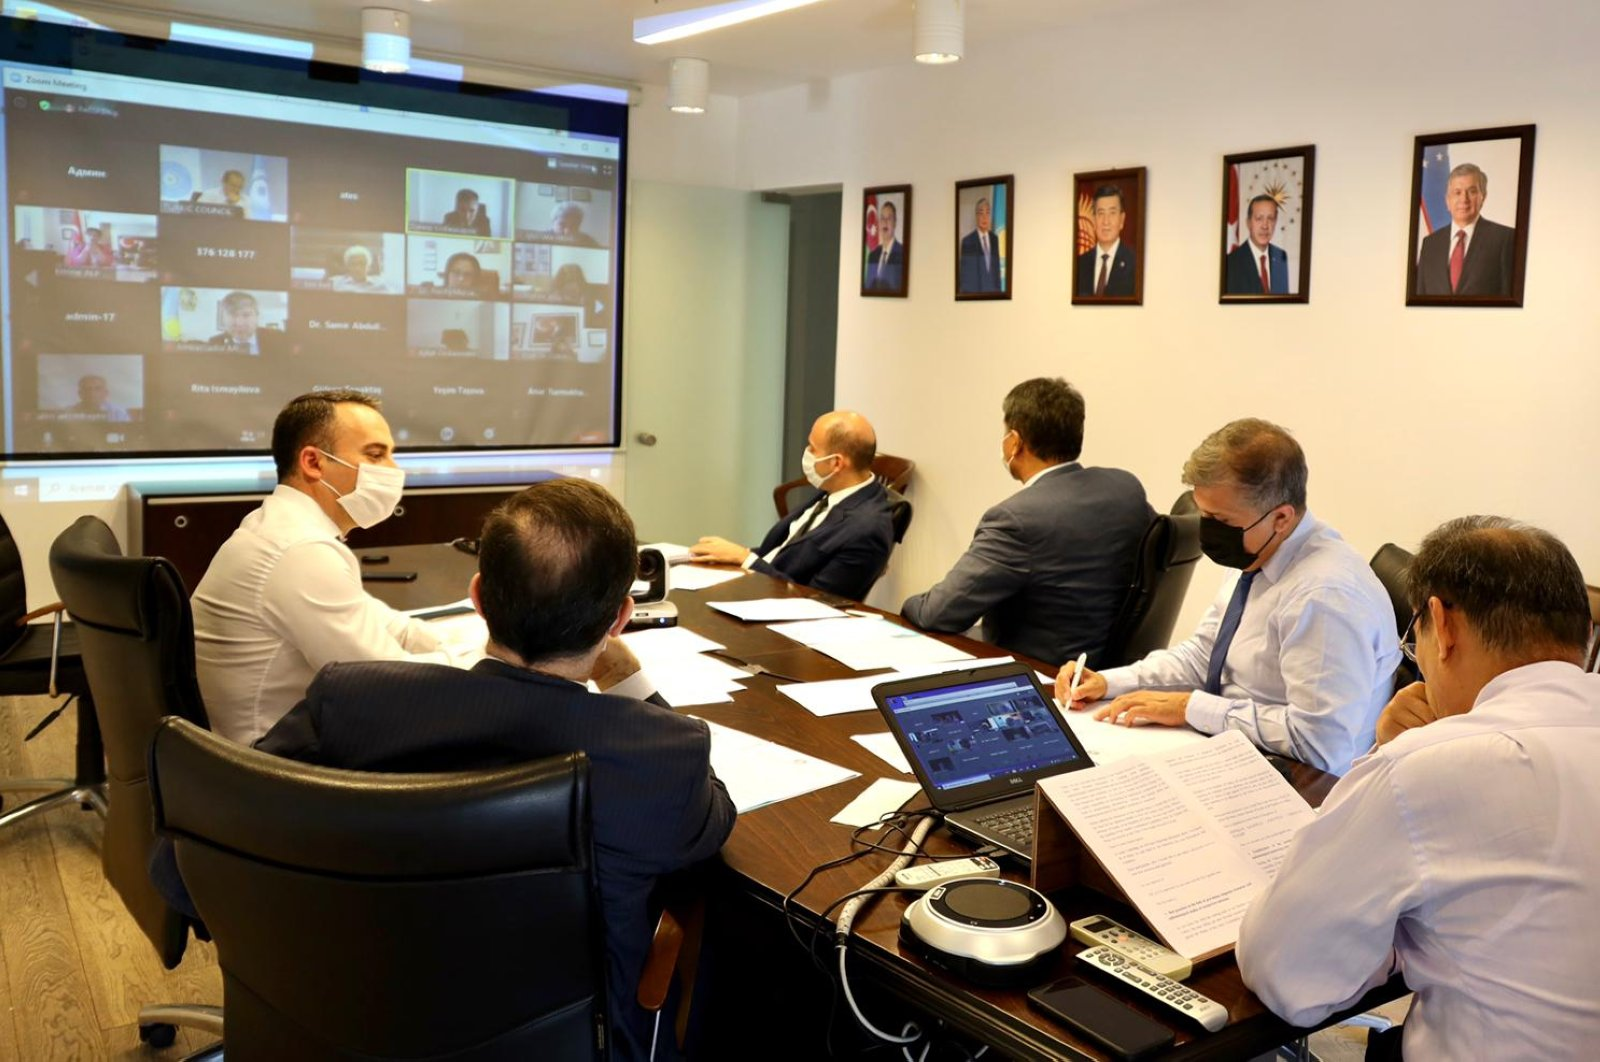 The Turkic Council Health Scientific Group meets for the first time to enhance cooperation against COVID-19 pandemic, July, 8, 2020.